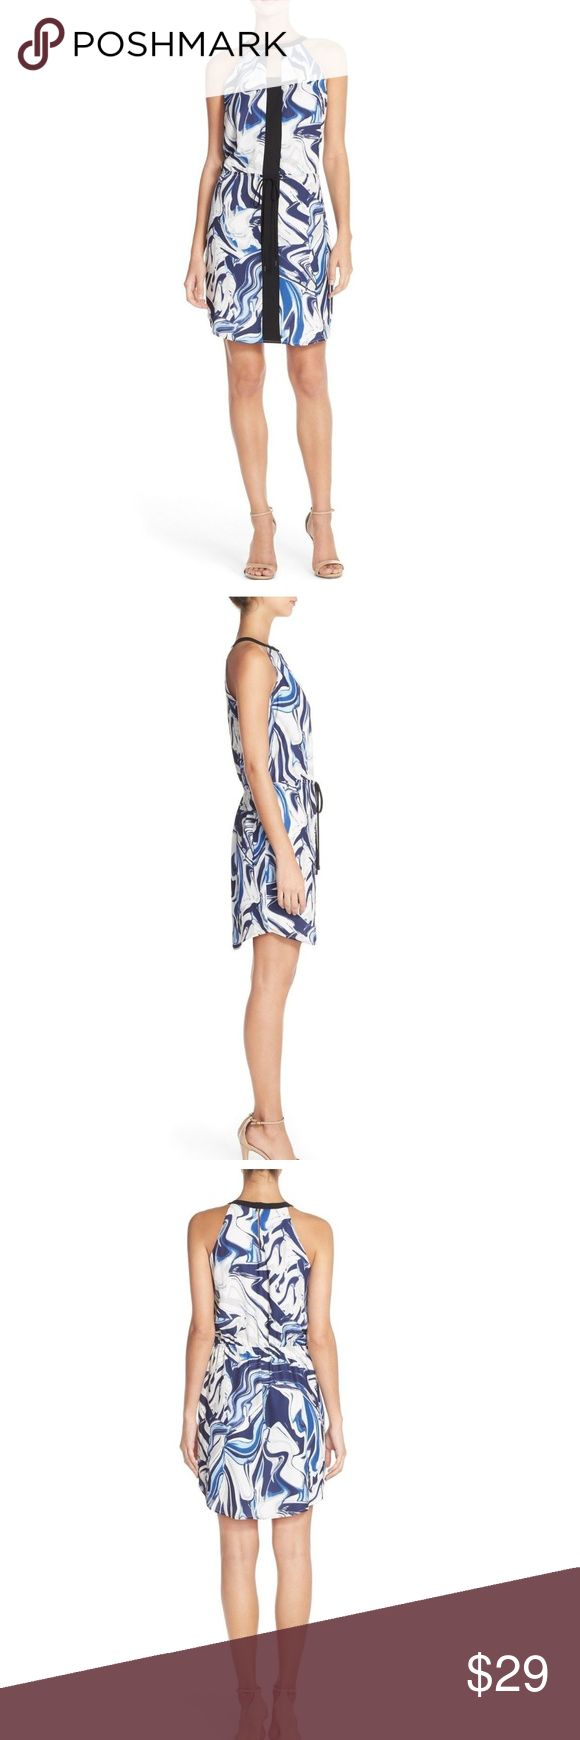 """Adelyn Rae Print Chiffon Sheath Halter Dress A swirling, marbled print in hues of blue heightens the resort-ready appeal of this easygoing dress designed with a sleek halter-style neck and flattering drawstring waist. Midweight, nonstretch chiffon. 33"""" length (size Medium). Halter-style neck. Sleeveless. Elastic drawstring waist. Back hook-and-eye keyhole closure. Fully lined. 100% polyester. Dry clean. By Adelyn Rae Adelyn Rae Dresses"""